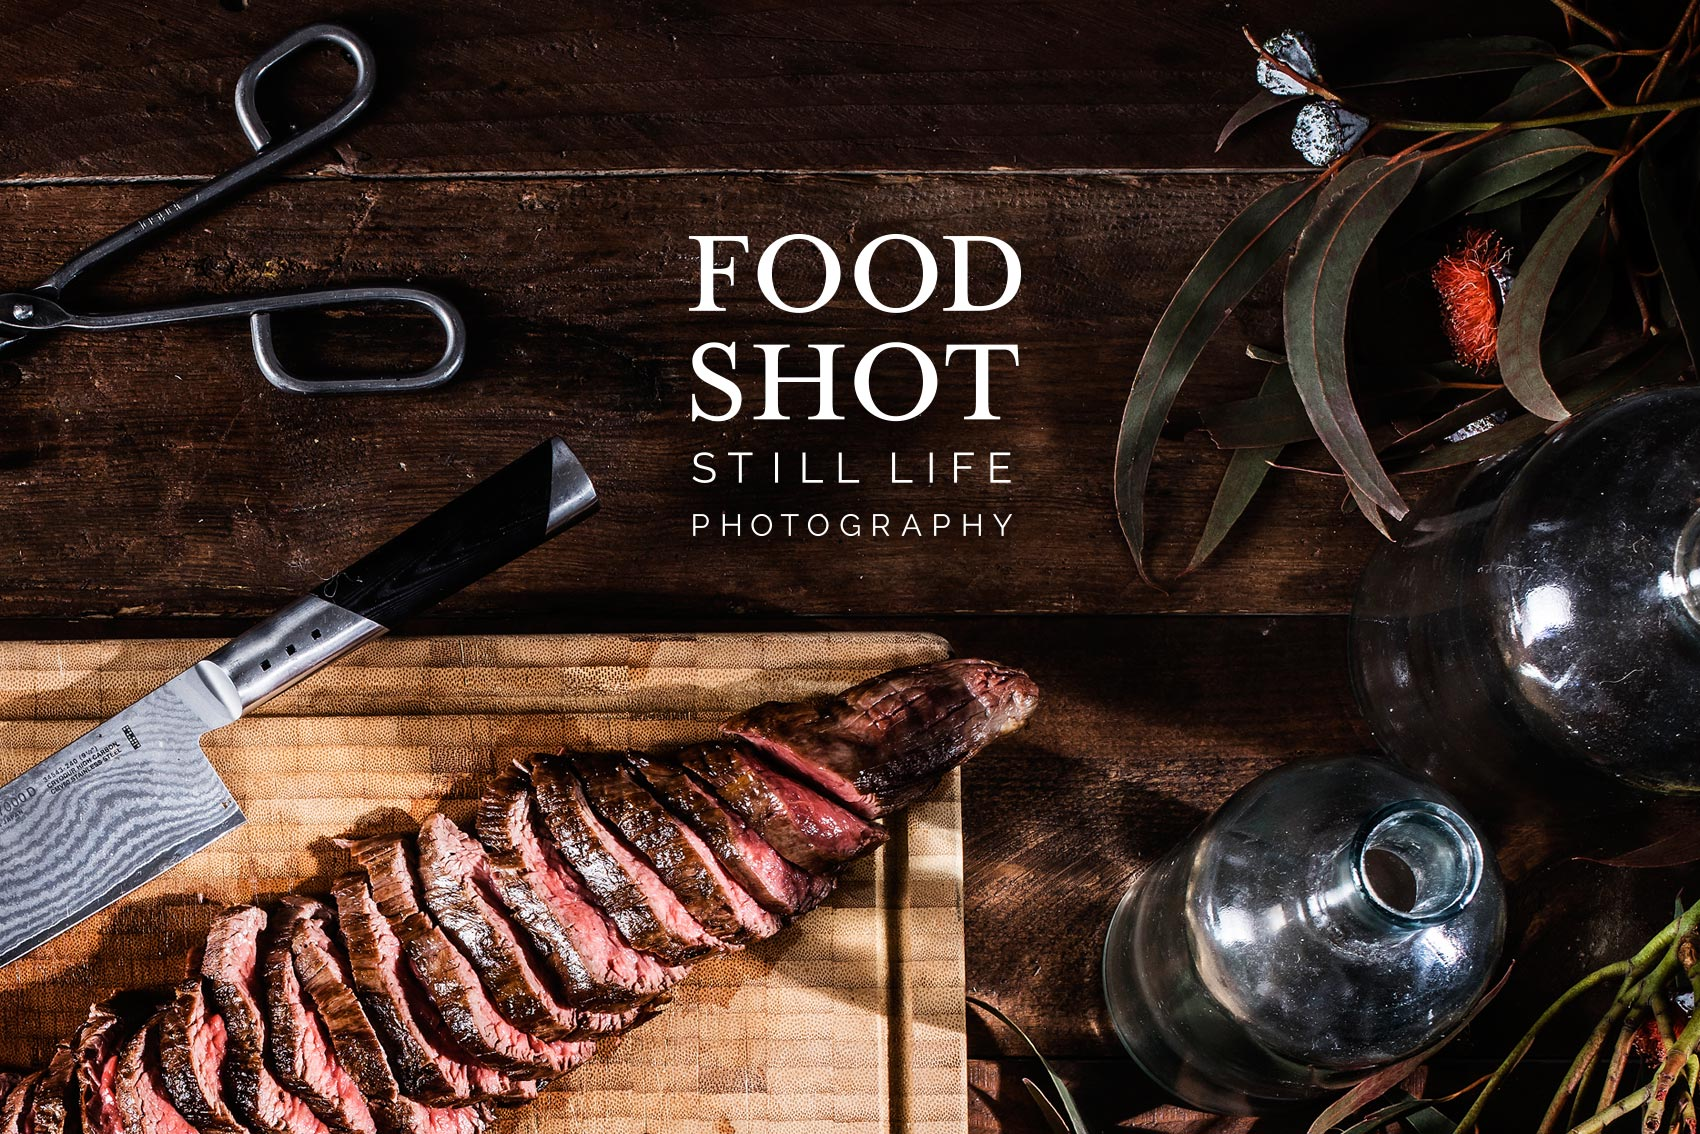 Food Shot food photography foodie naming branding logo design corporate identity Vibranding